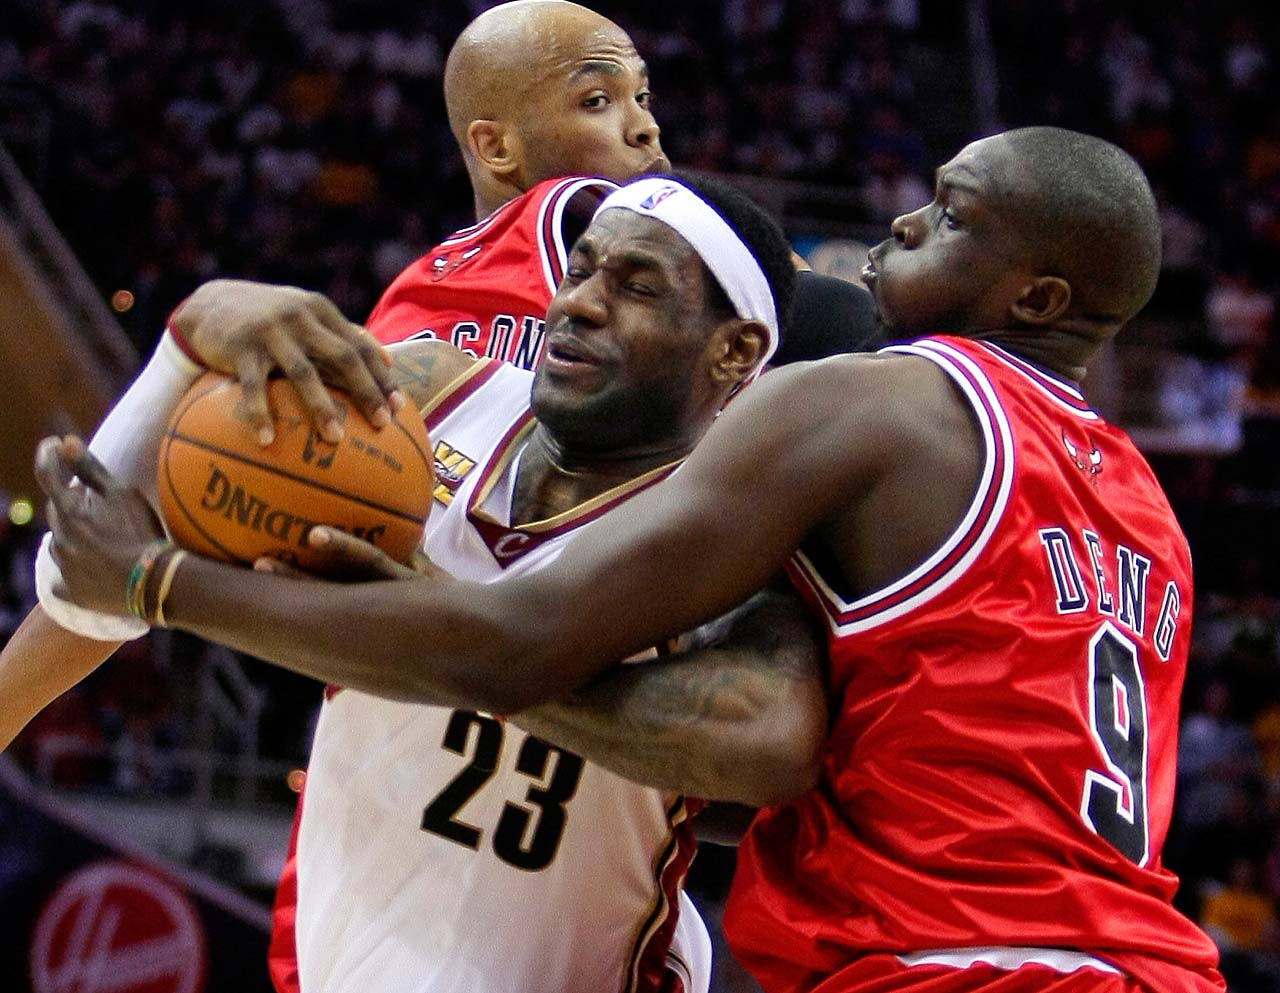 LeBron James is fouled by Chicago Bulls' Luol Deng in Game 5 of a first-round playoff series on April 27, 2010, in Cleveland.